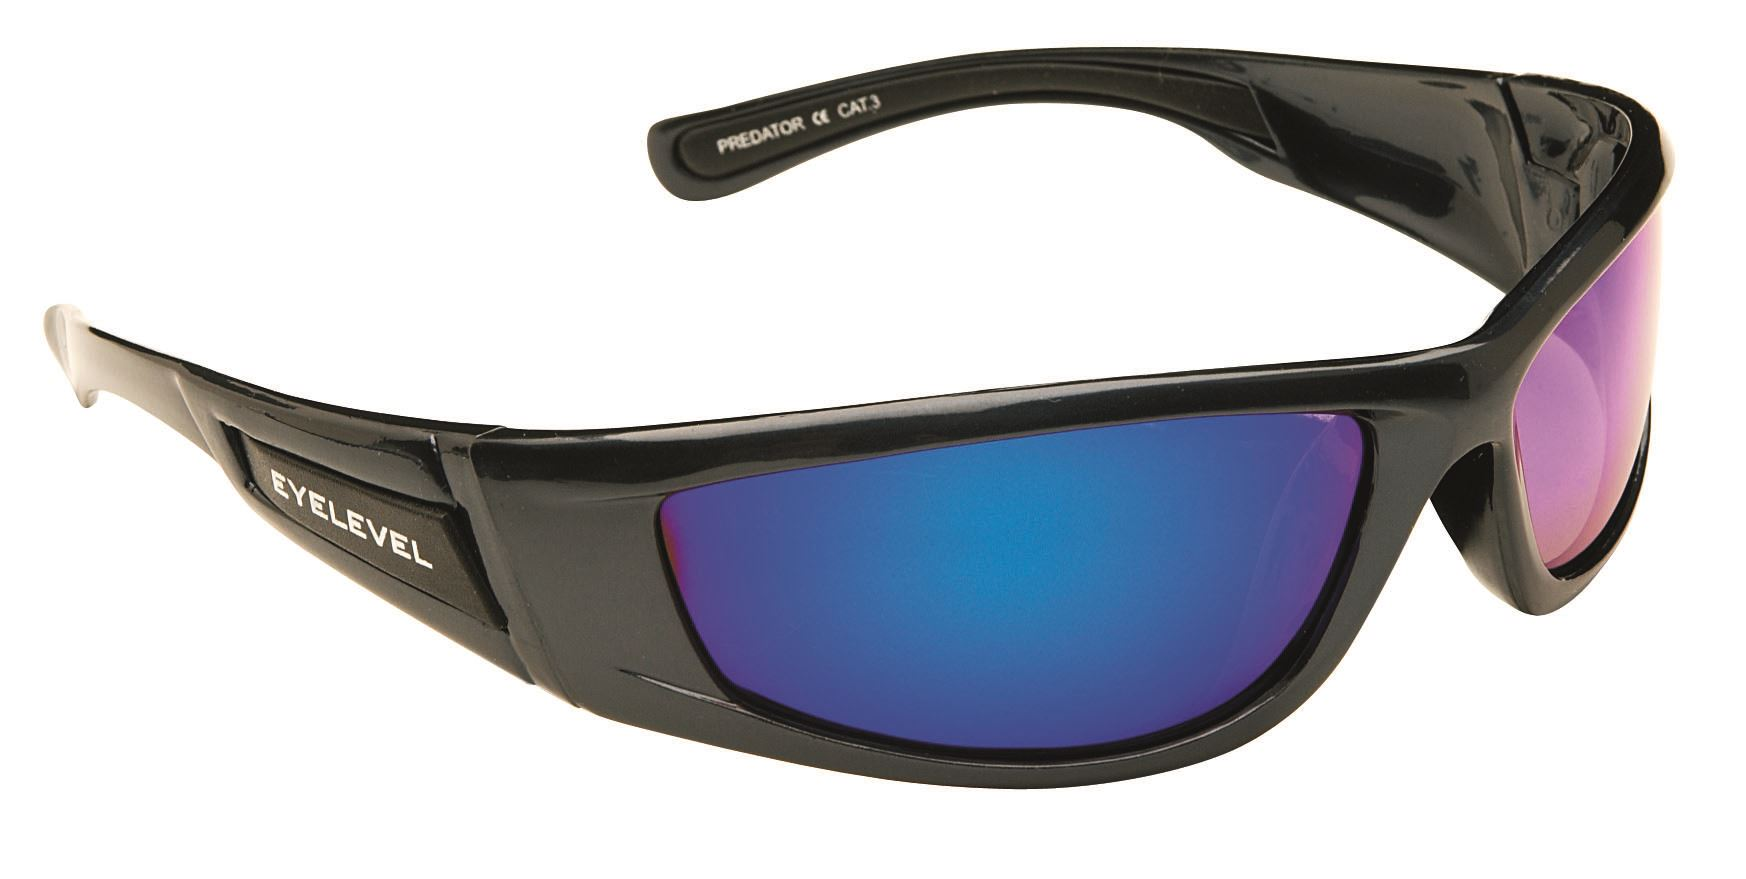 Predator Sunglasses - Blue Lens